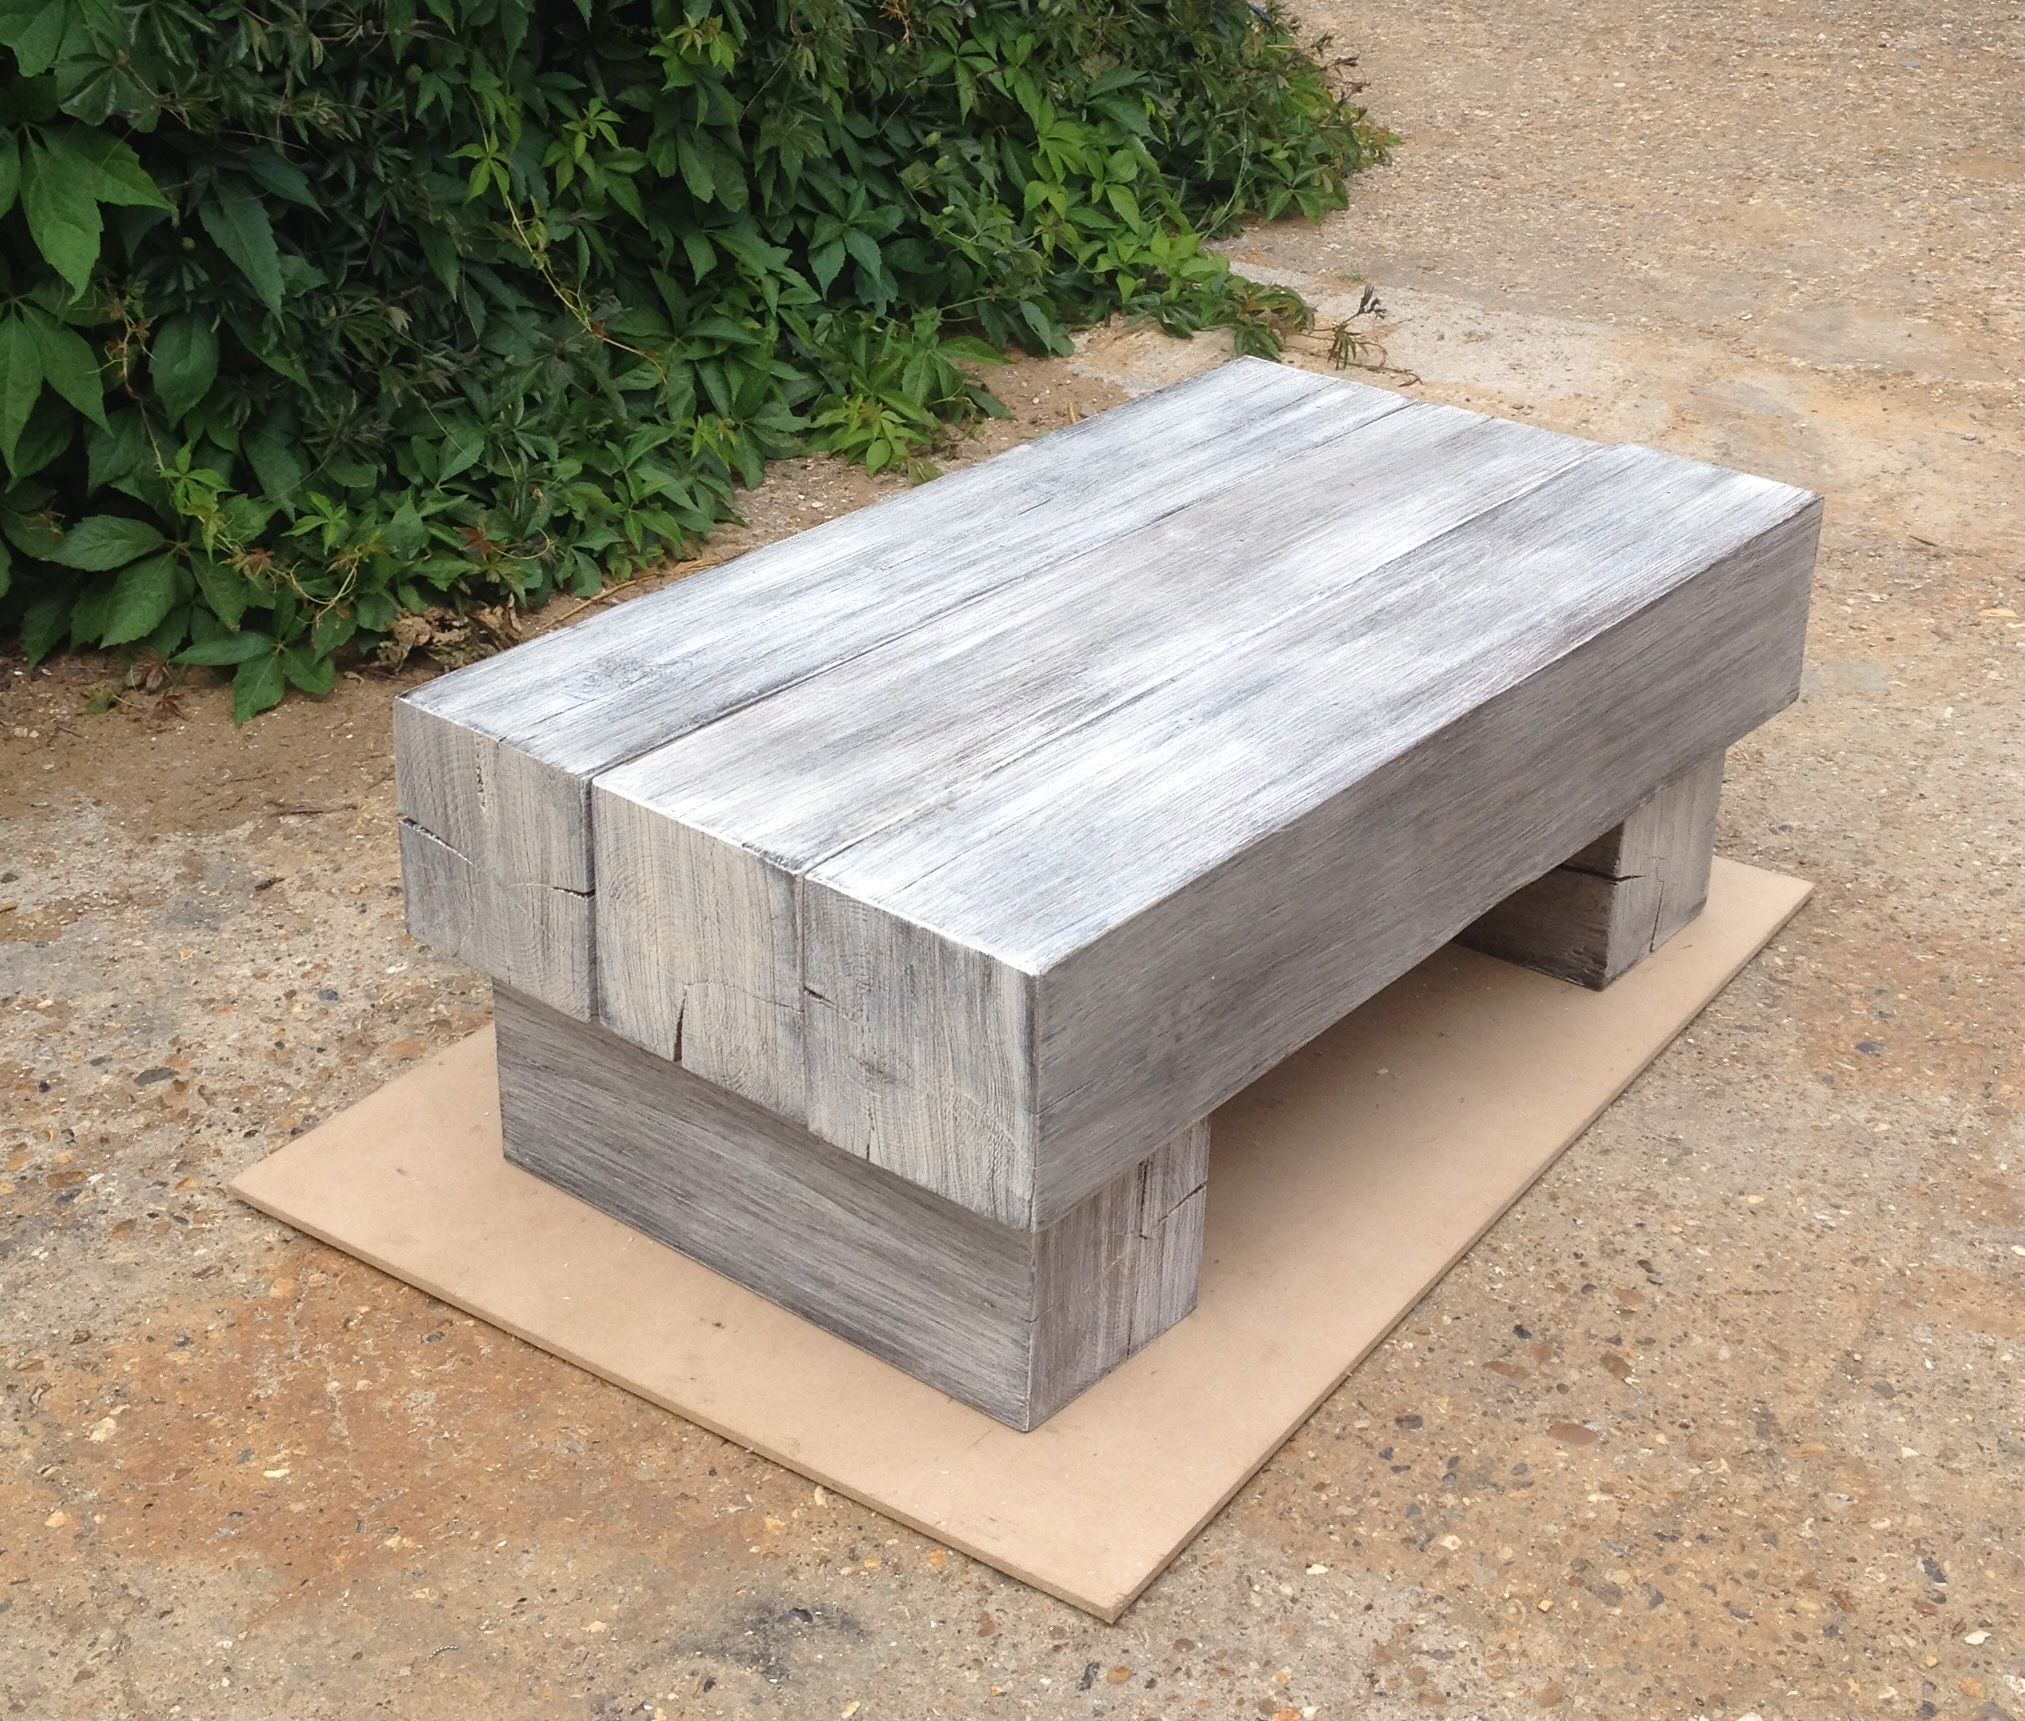 Chunky sleeper style coffee table construction cpe pinterest chunky sleeper style coffee table geotapseo Gallery